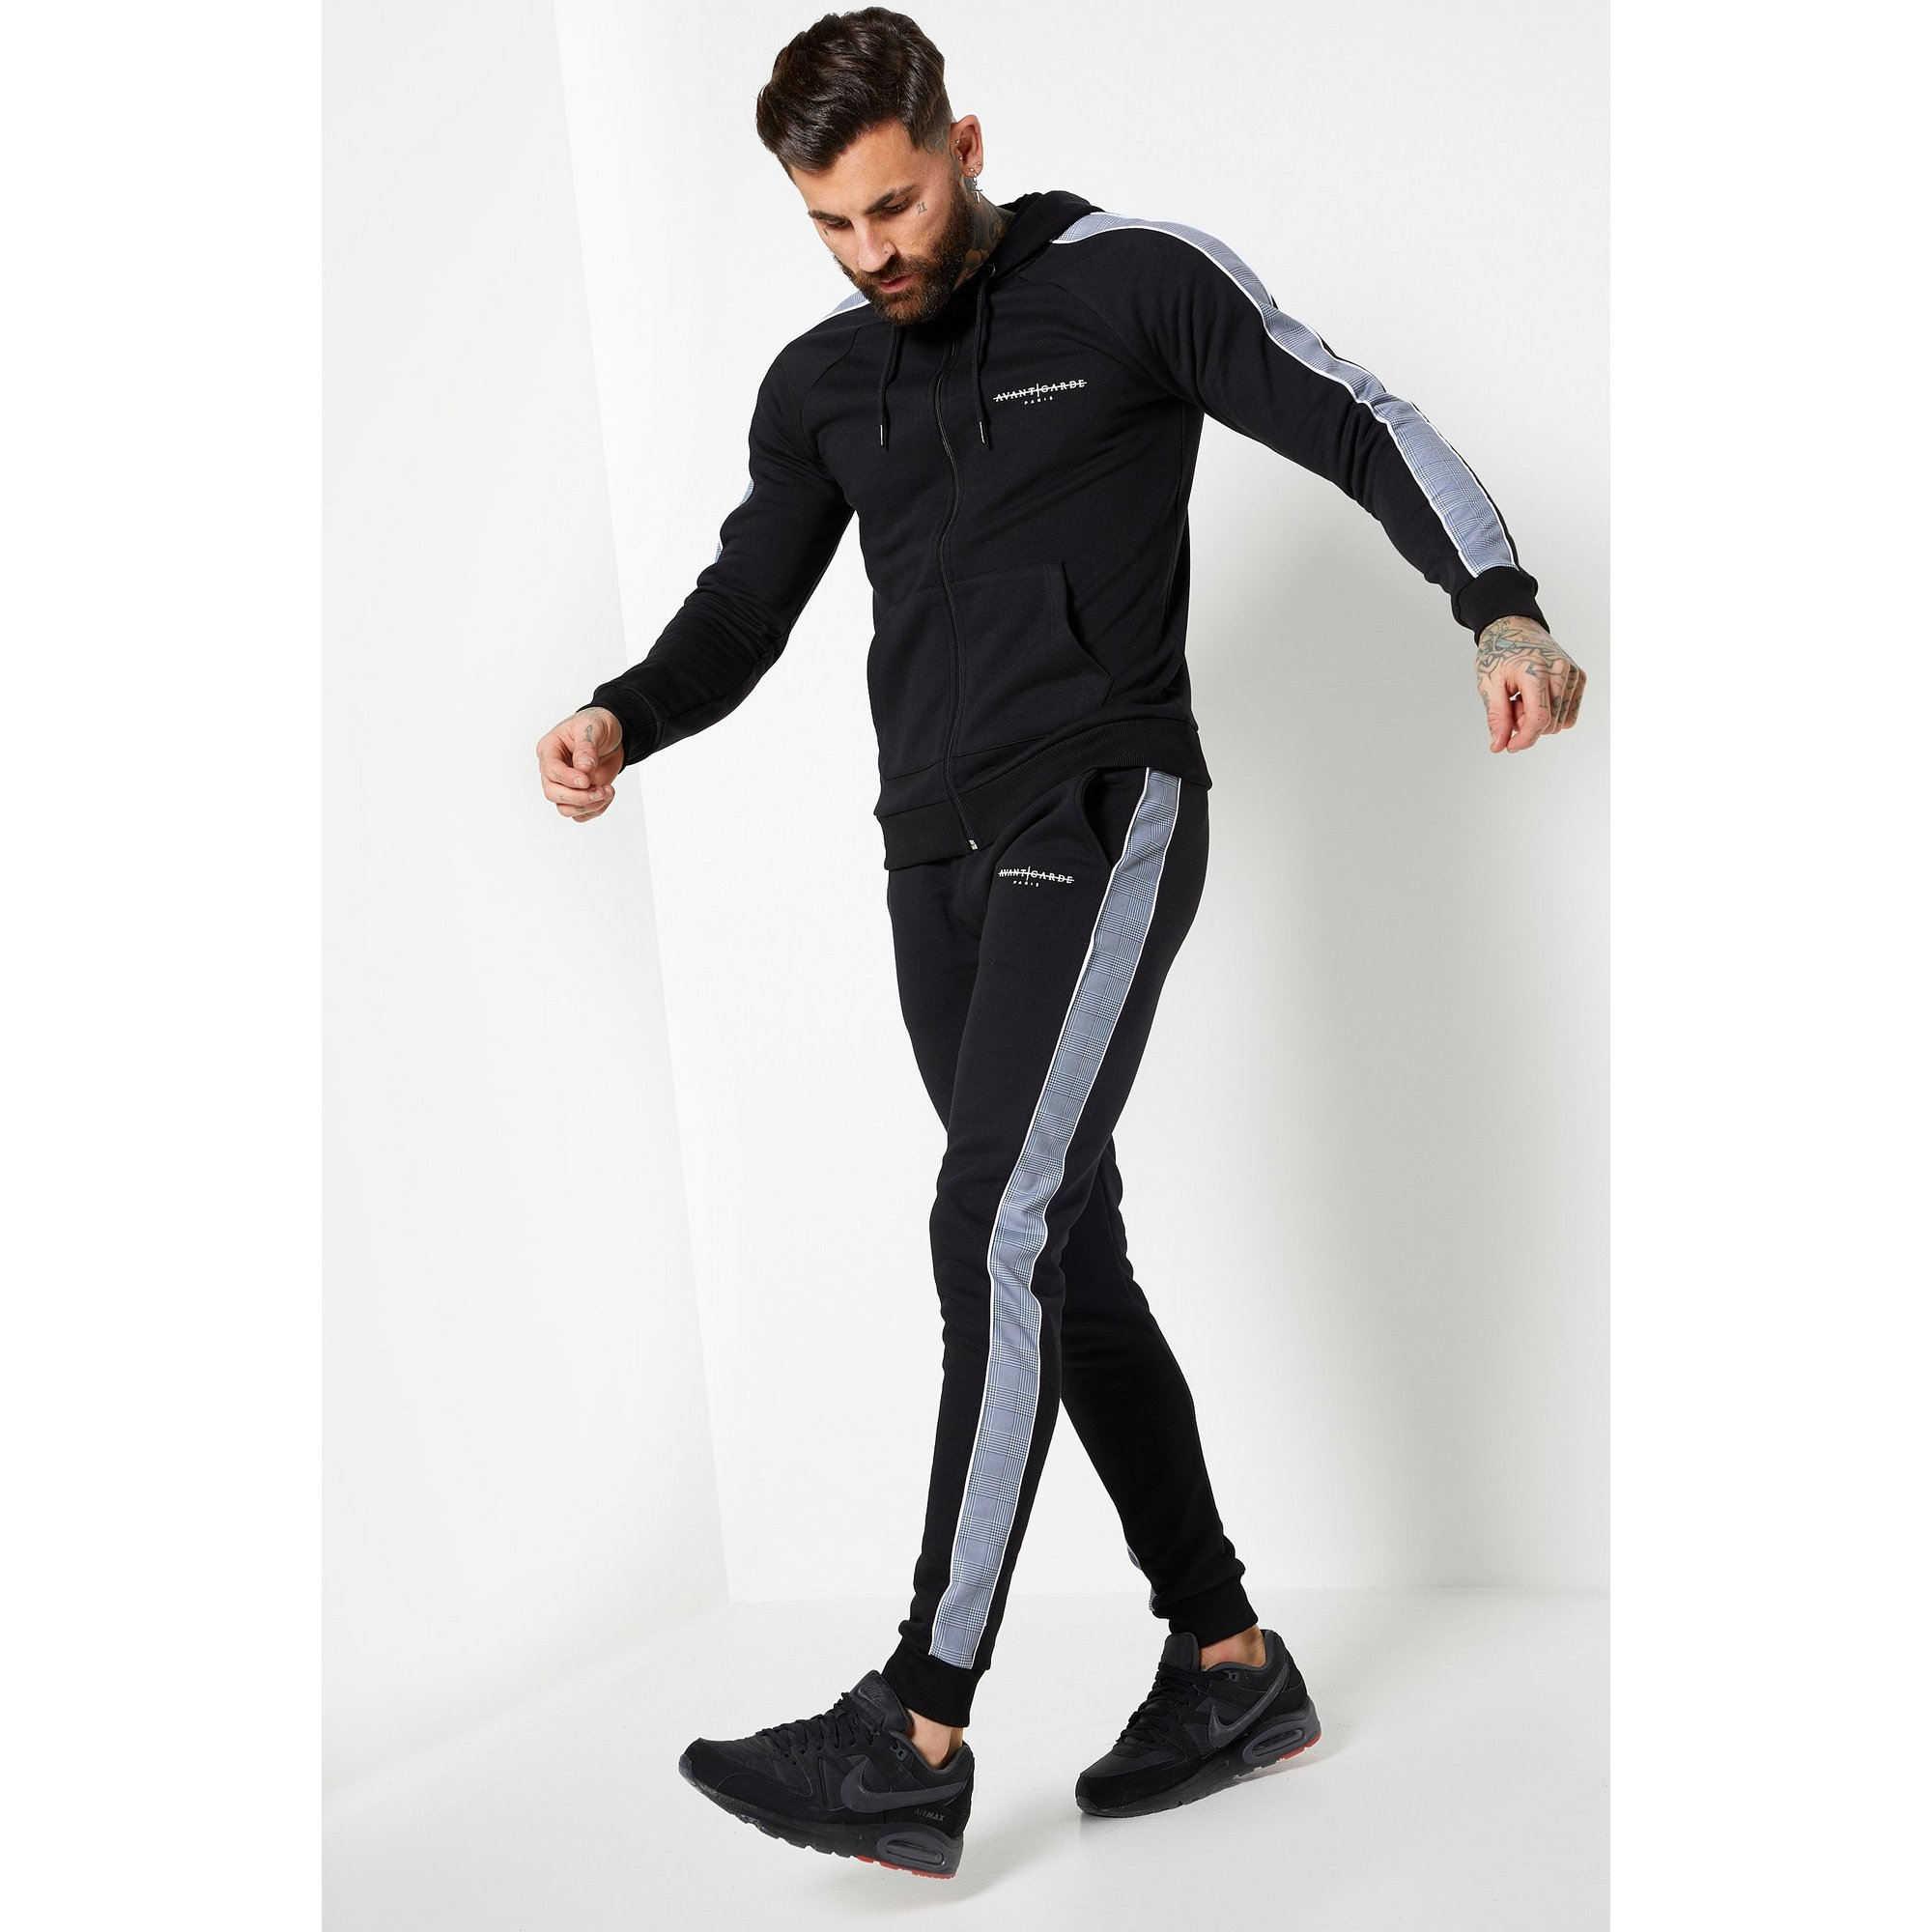 Image of Avant Garde Check Taping Black Tracksuit